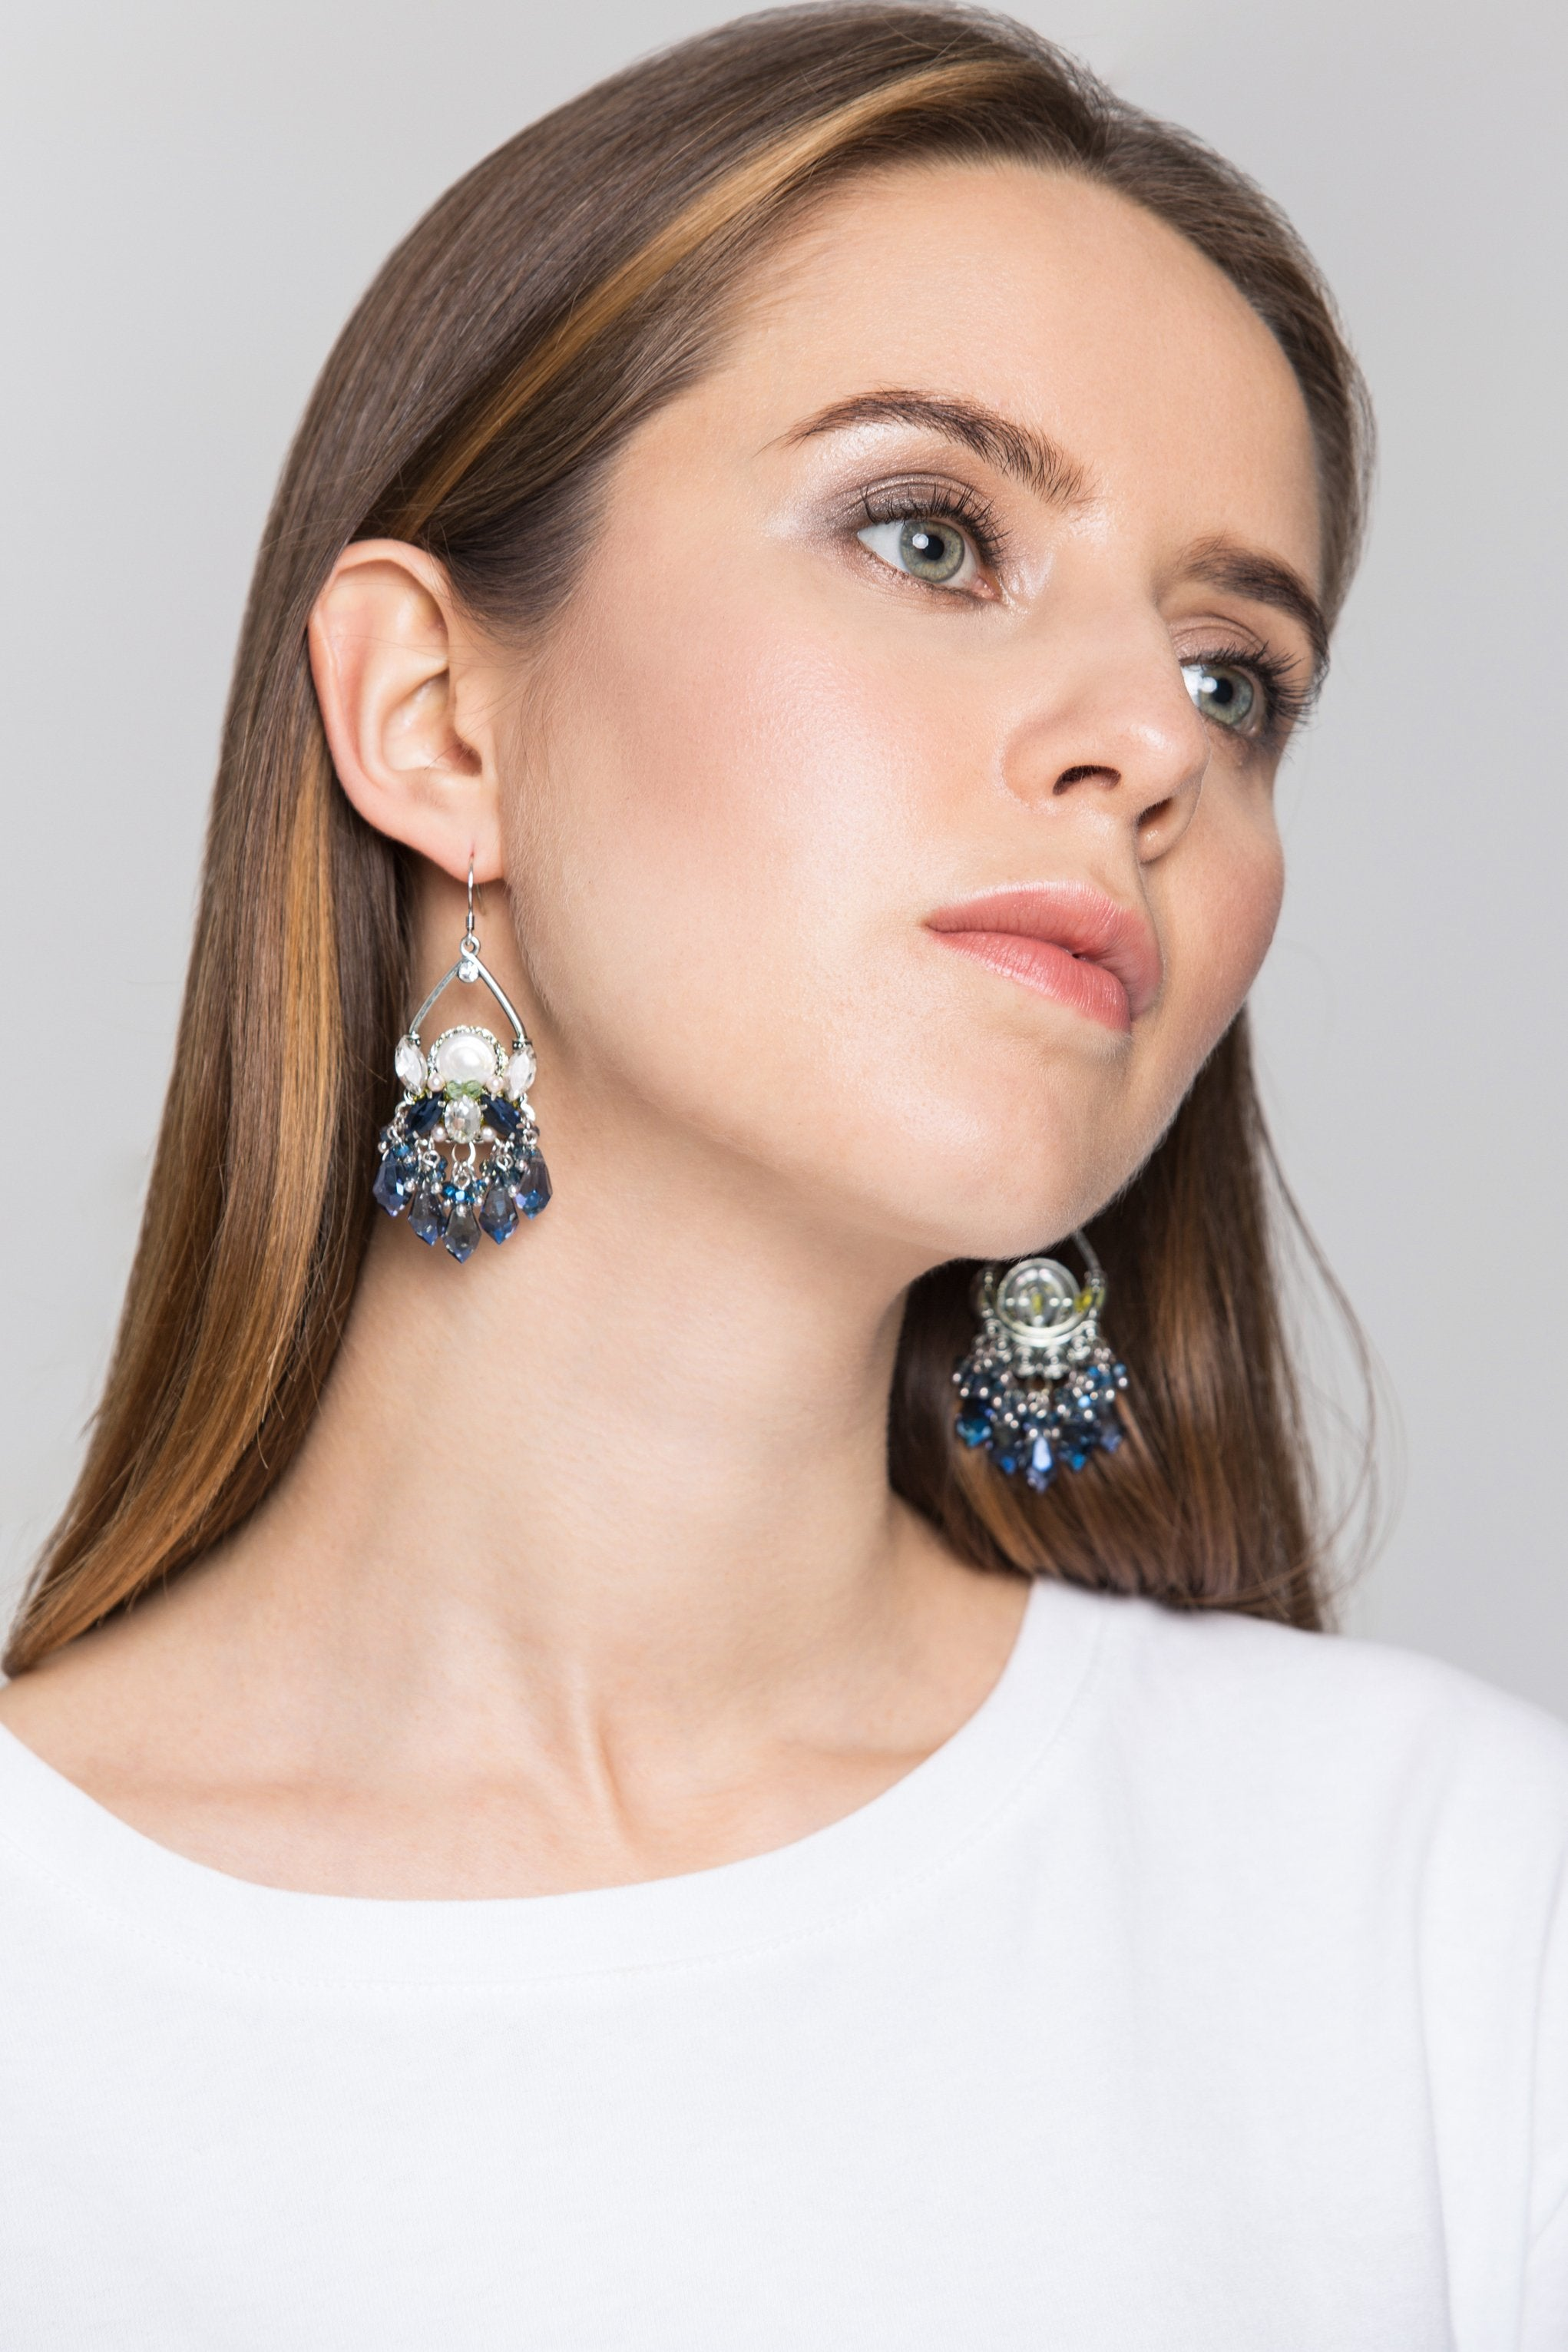 Blue Crystal Chandelier Earrings -ownthelooks